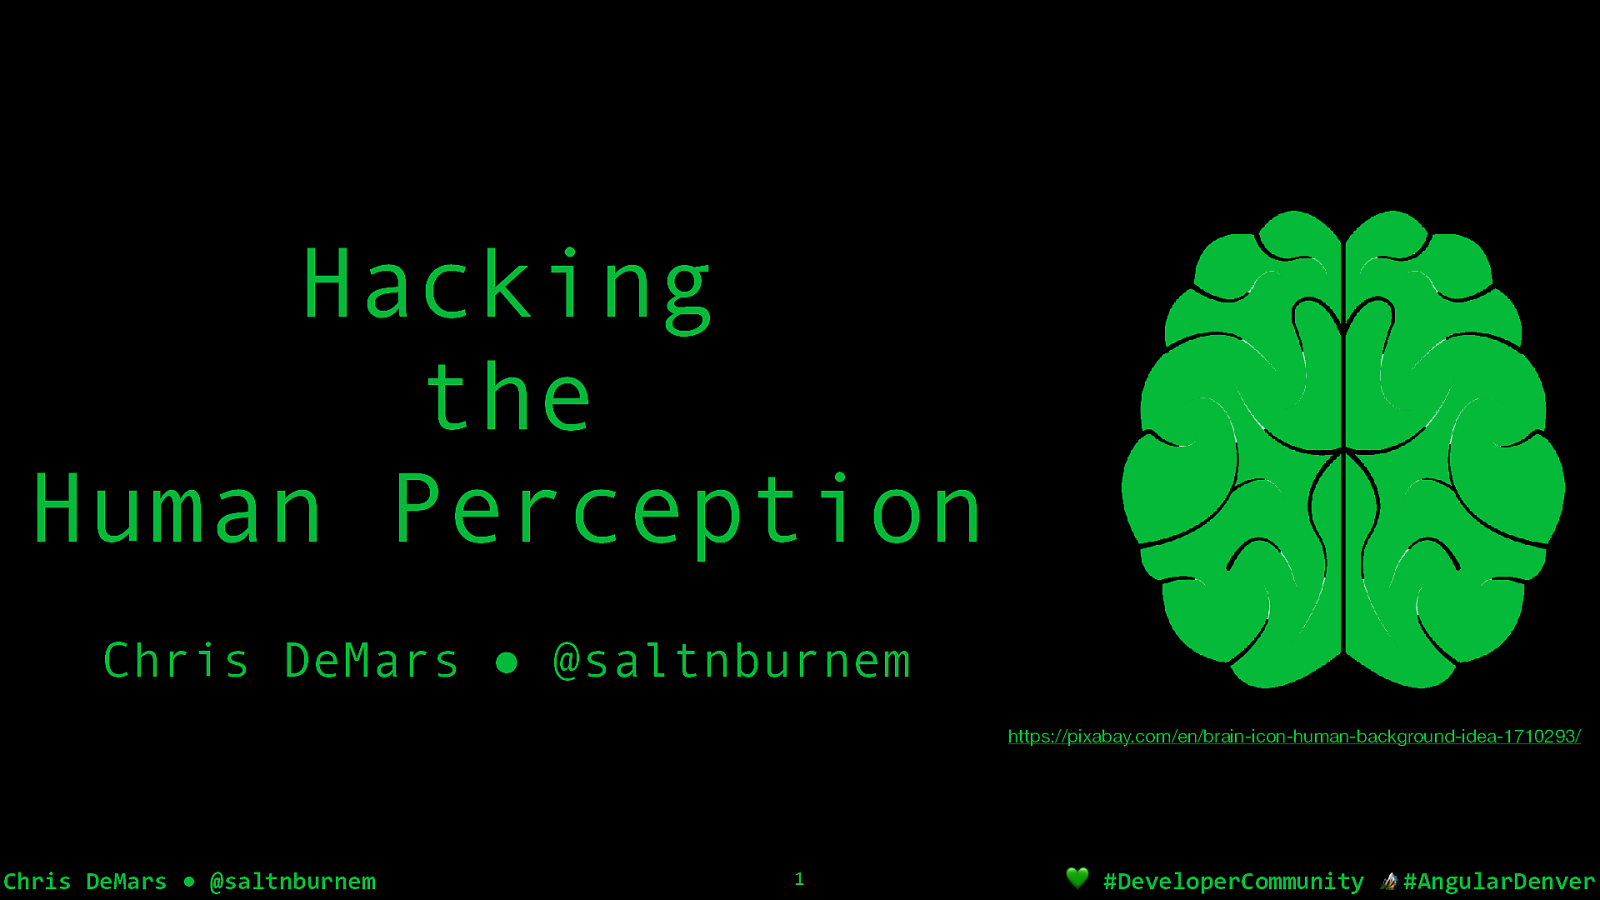 Hacking the Human Perception